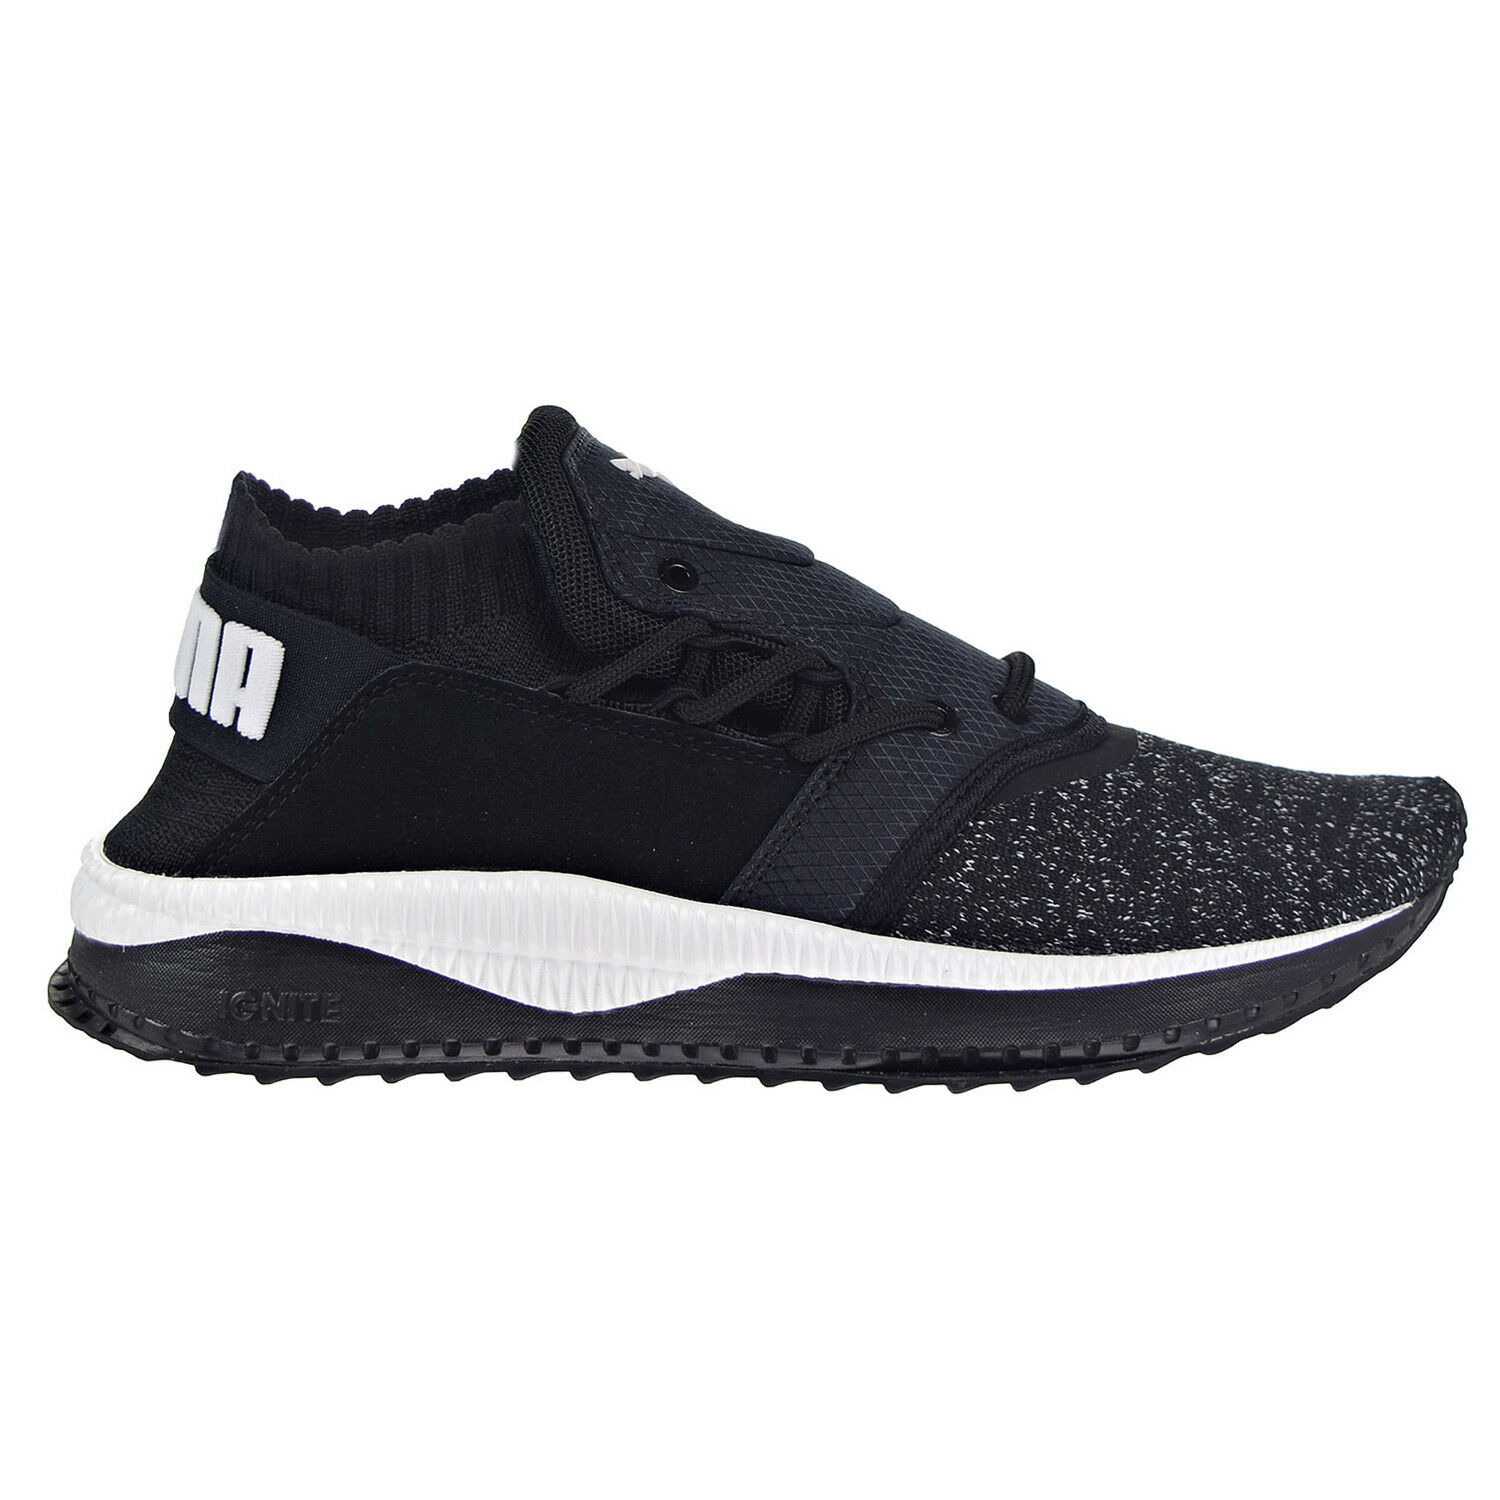 Puma Tsugi Shinsei Nocturnal Men's shoes Puma Black White 363760-01